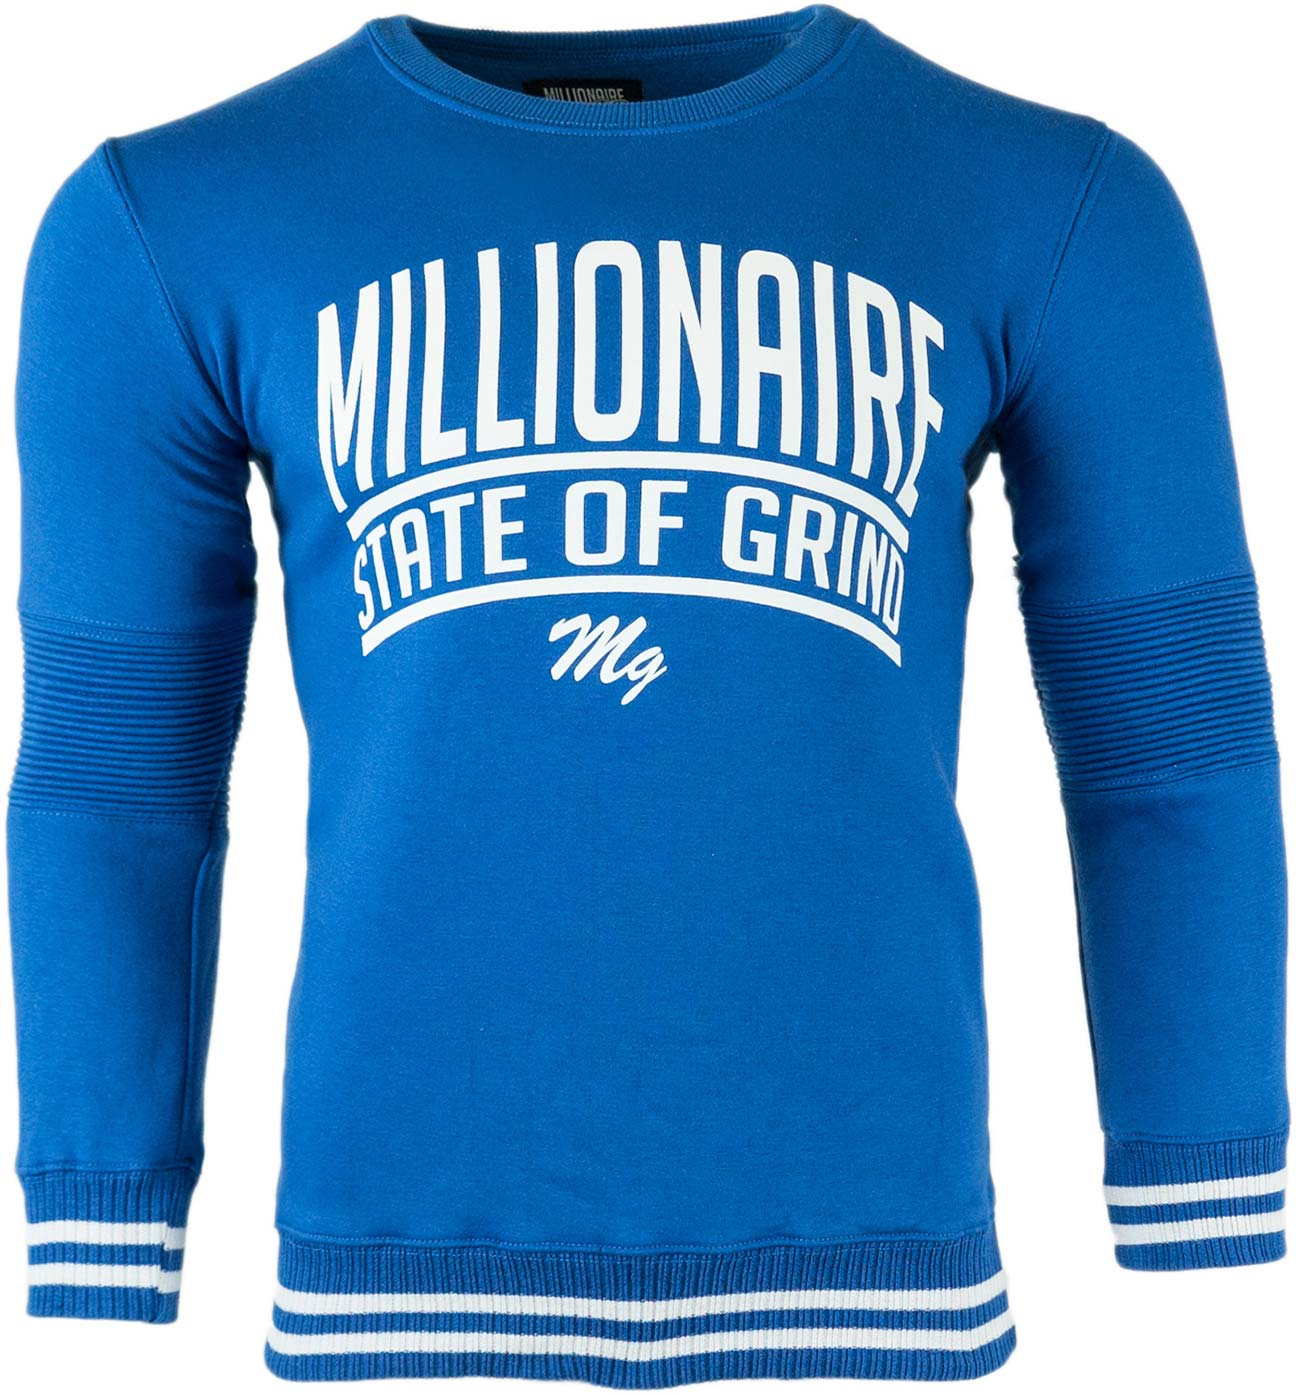 Millionaire State Of Grind Crew - (Royal / White)